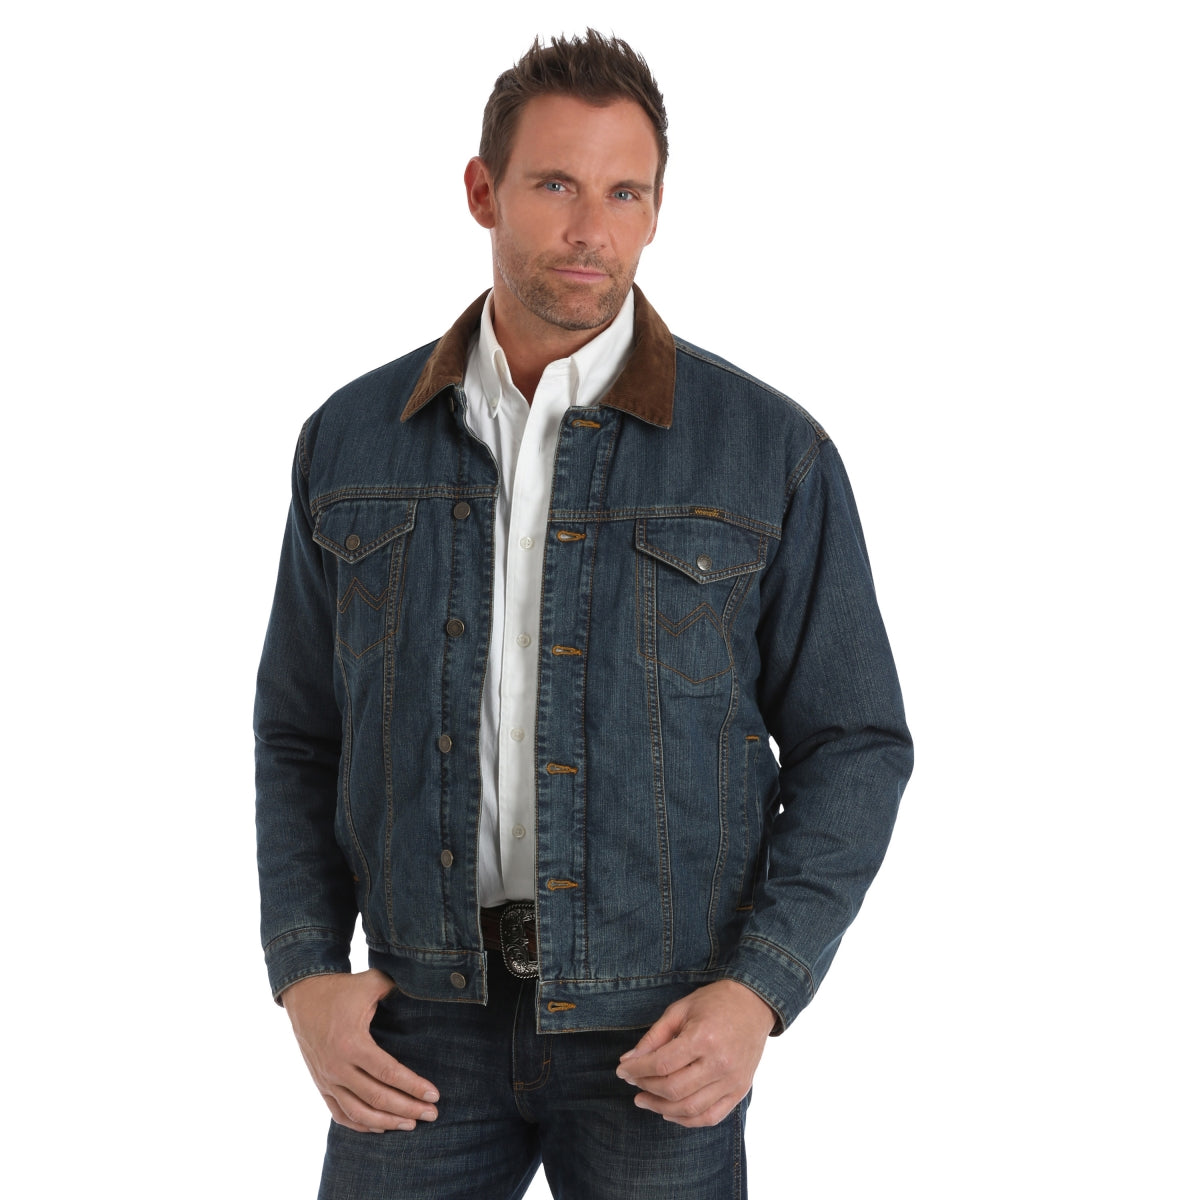 Denim Conceal Carry Jacket